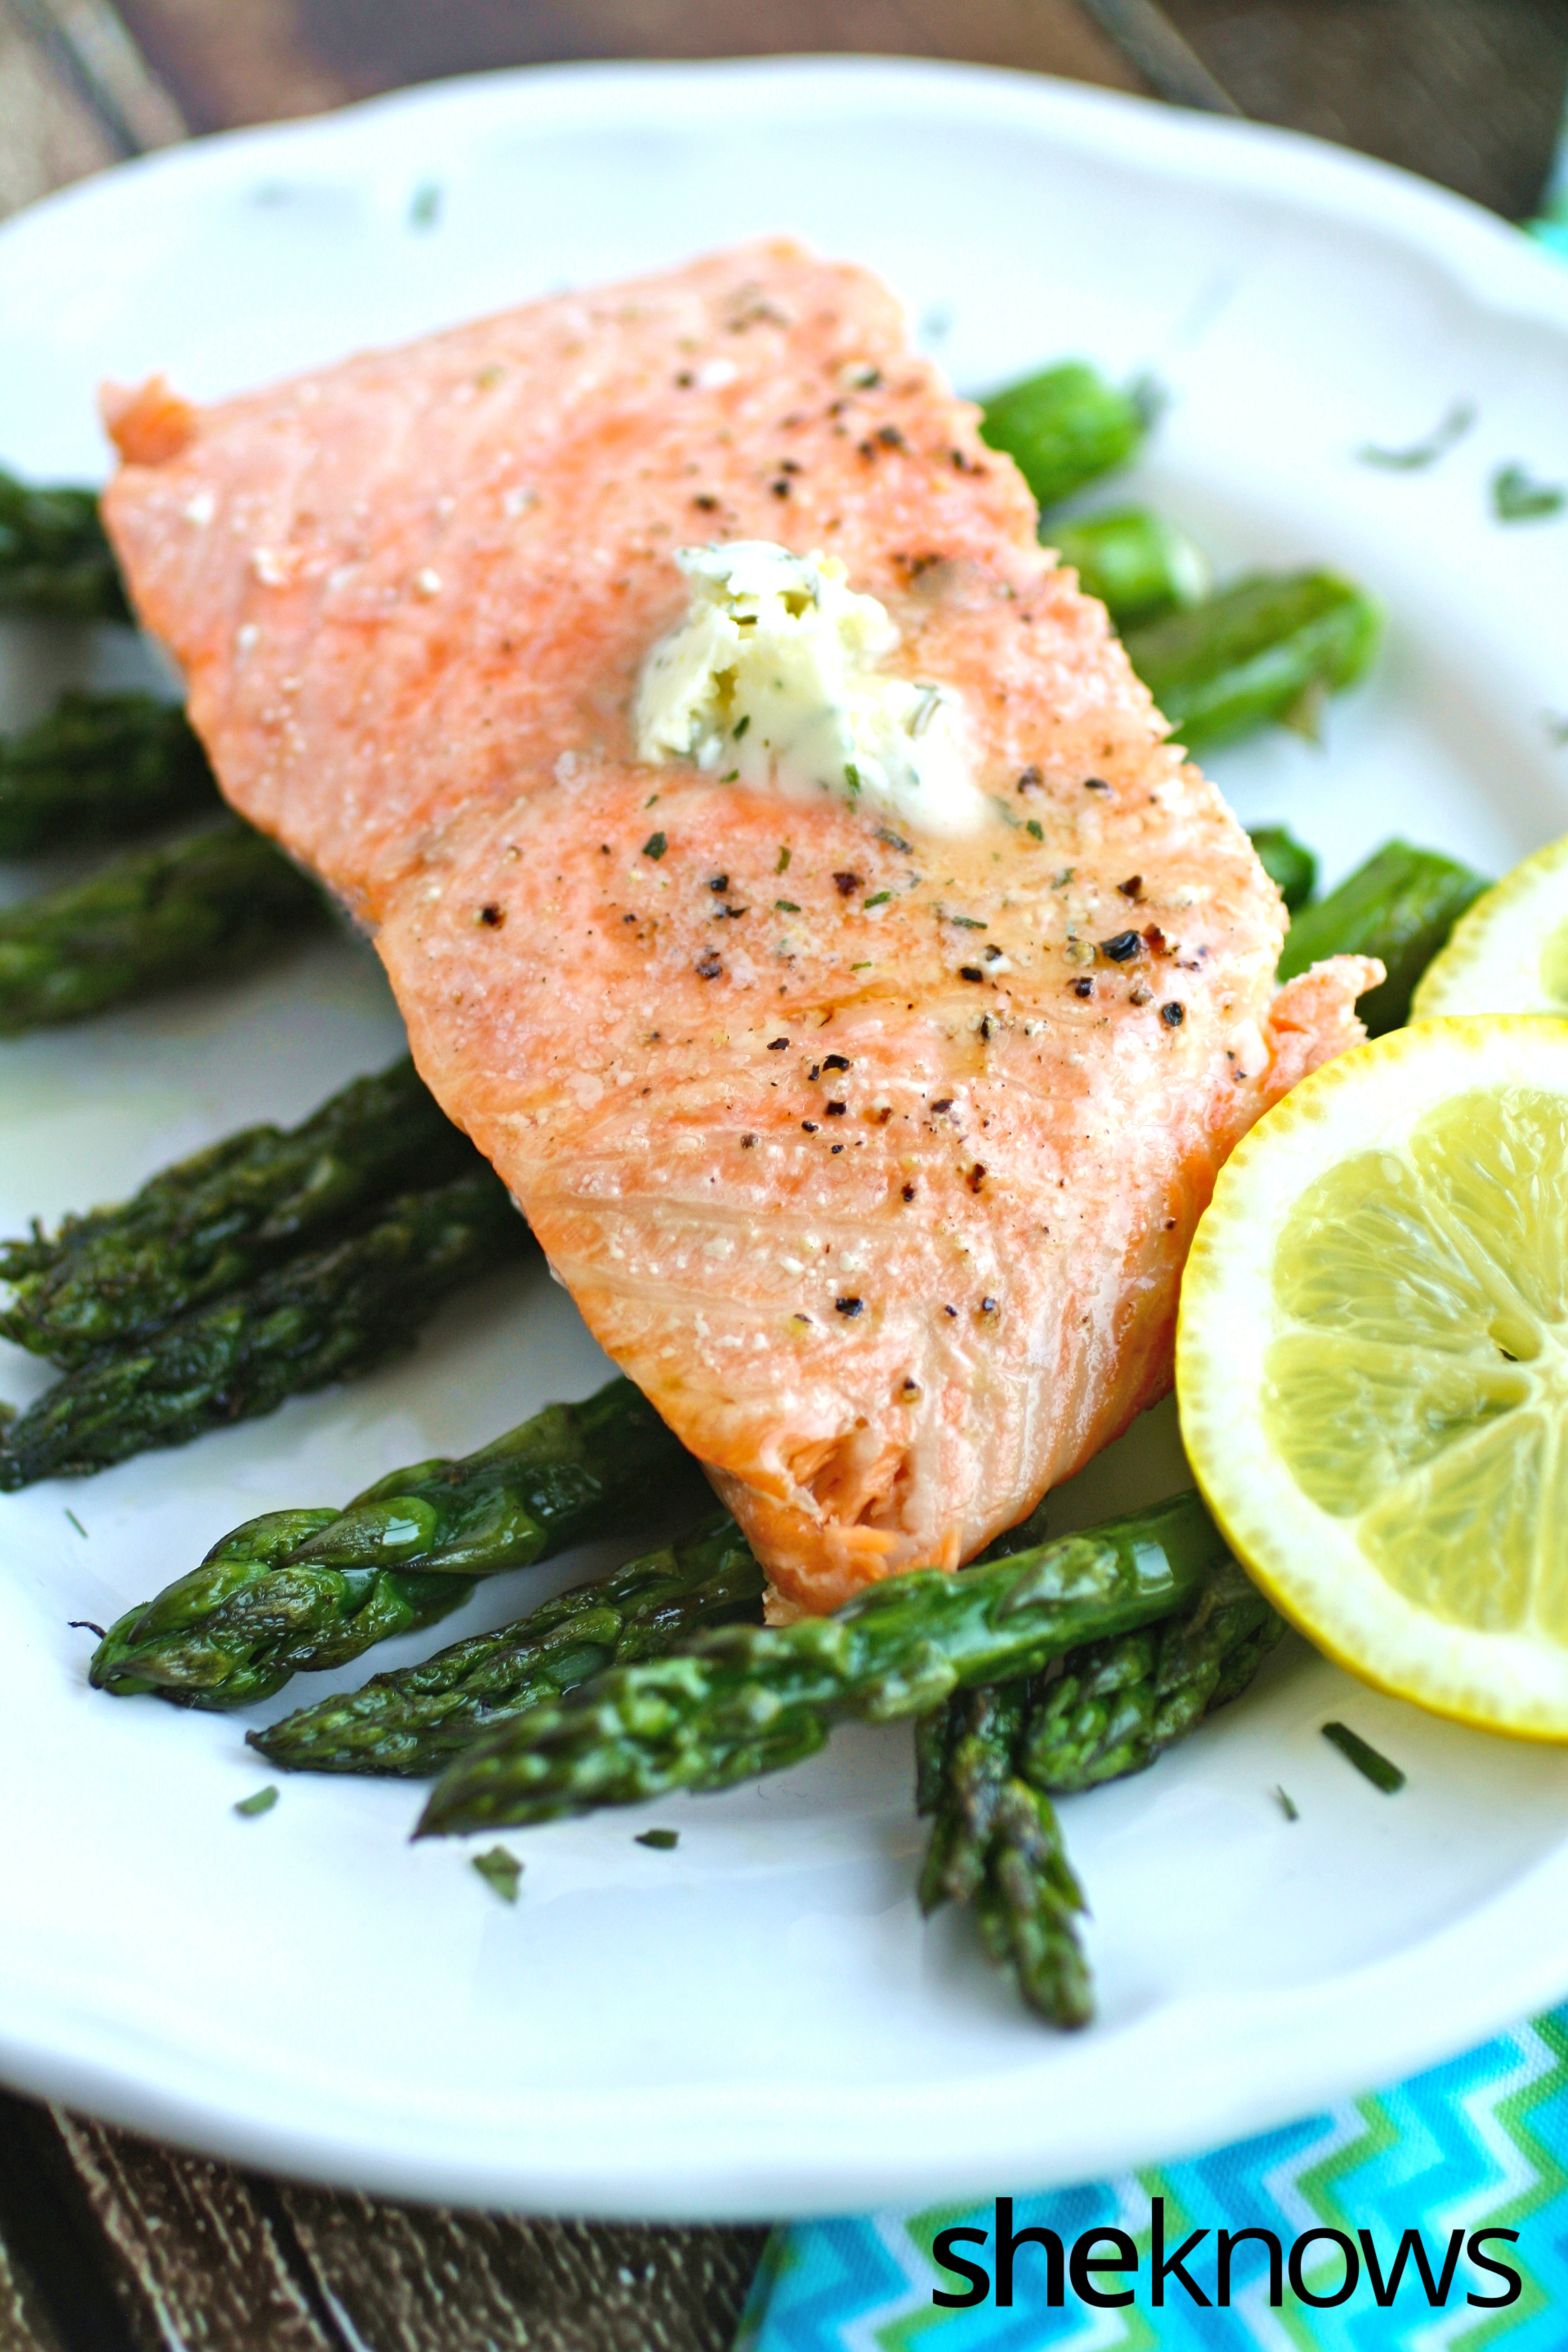 ... -baked salmon with asparagus and lemon-tarragon butter is a delight